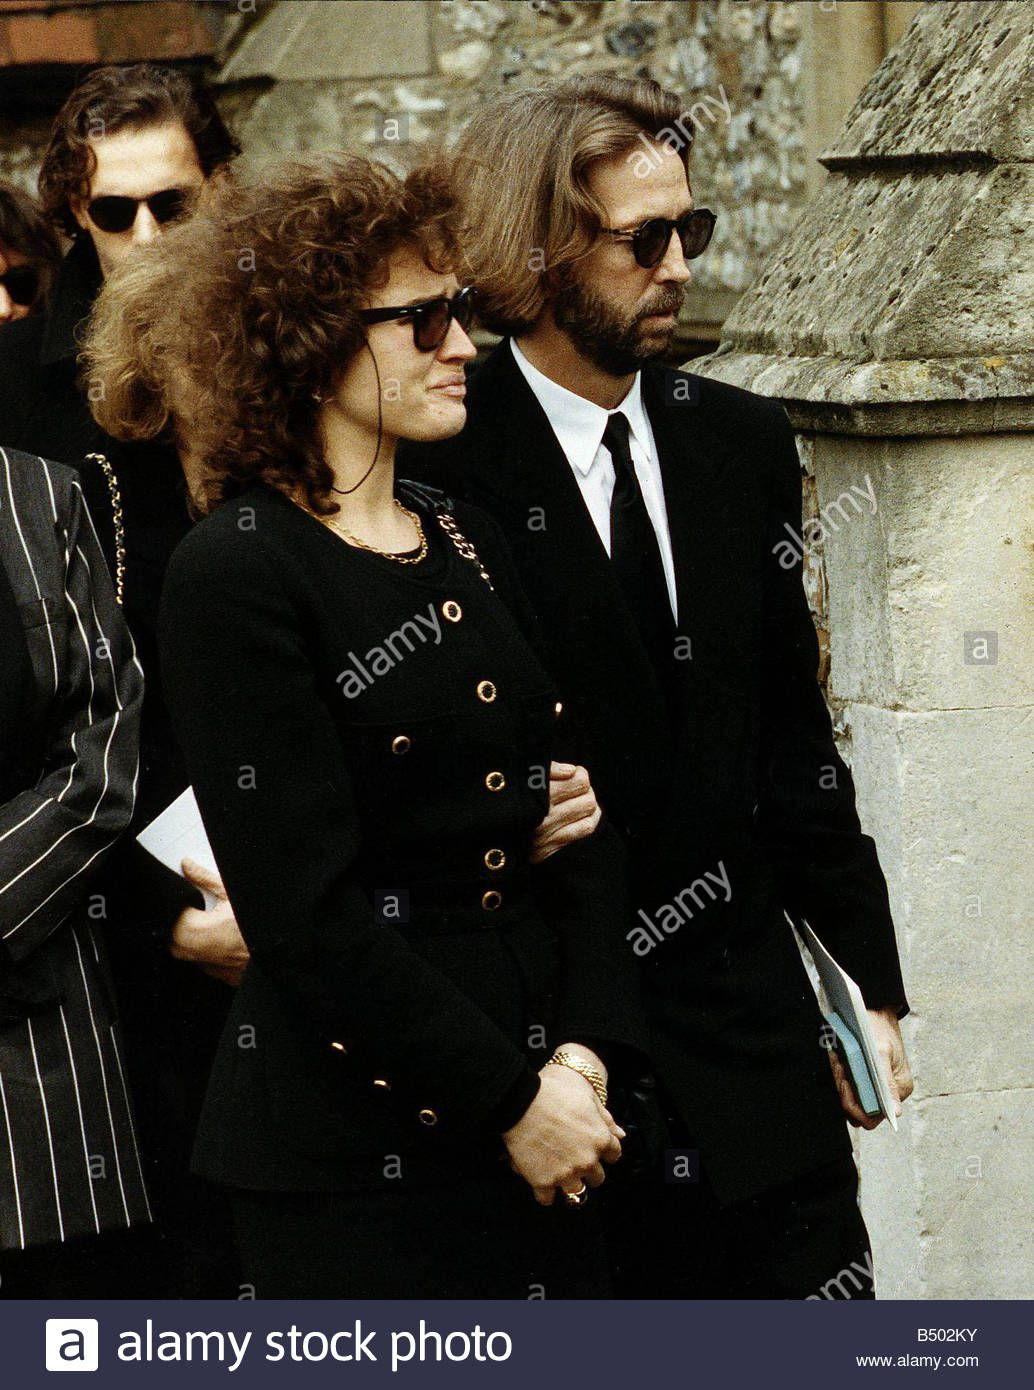 eric clapton and wife lori attend funeral of their son connor stock photo eric clapton. Black Bedroom Furniture Sets. Home Design Ideas